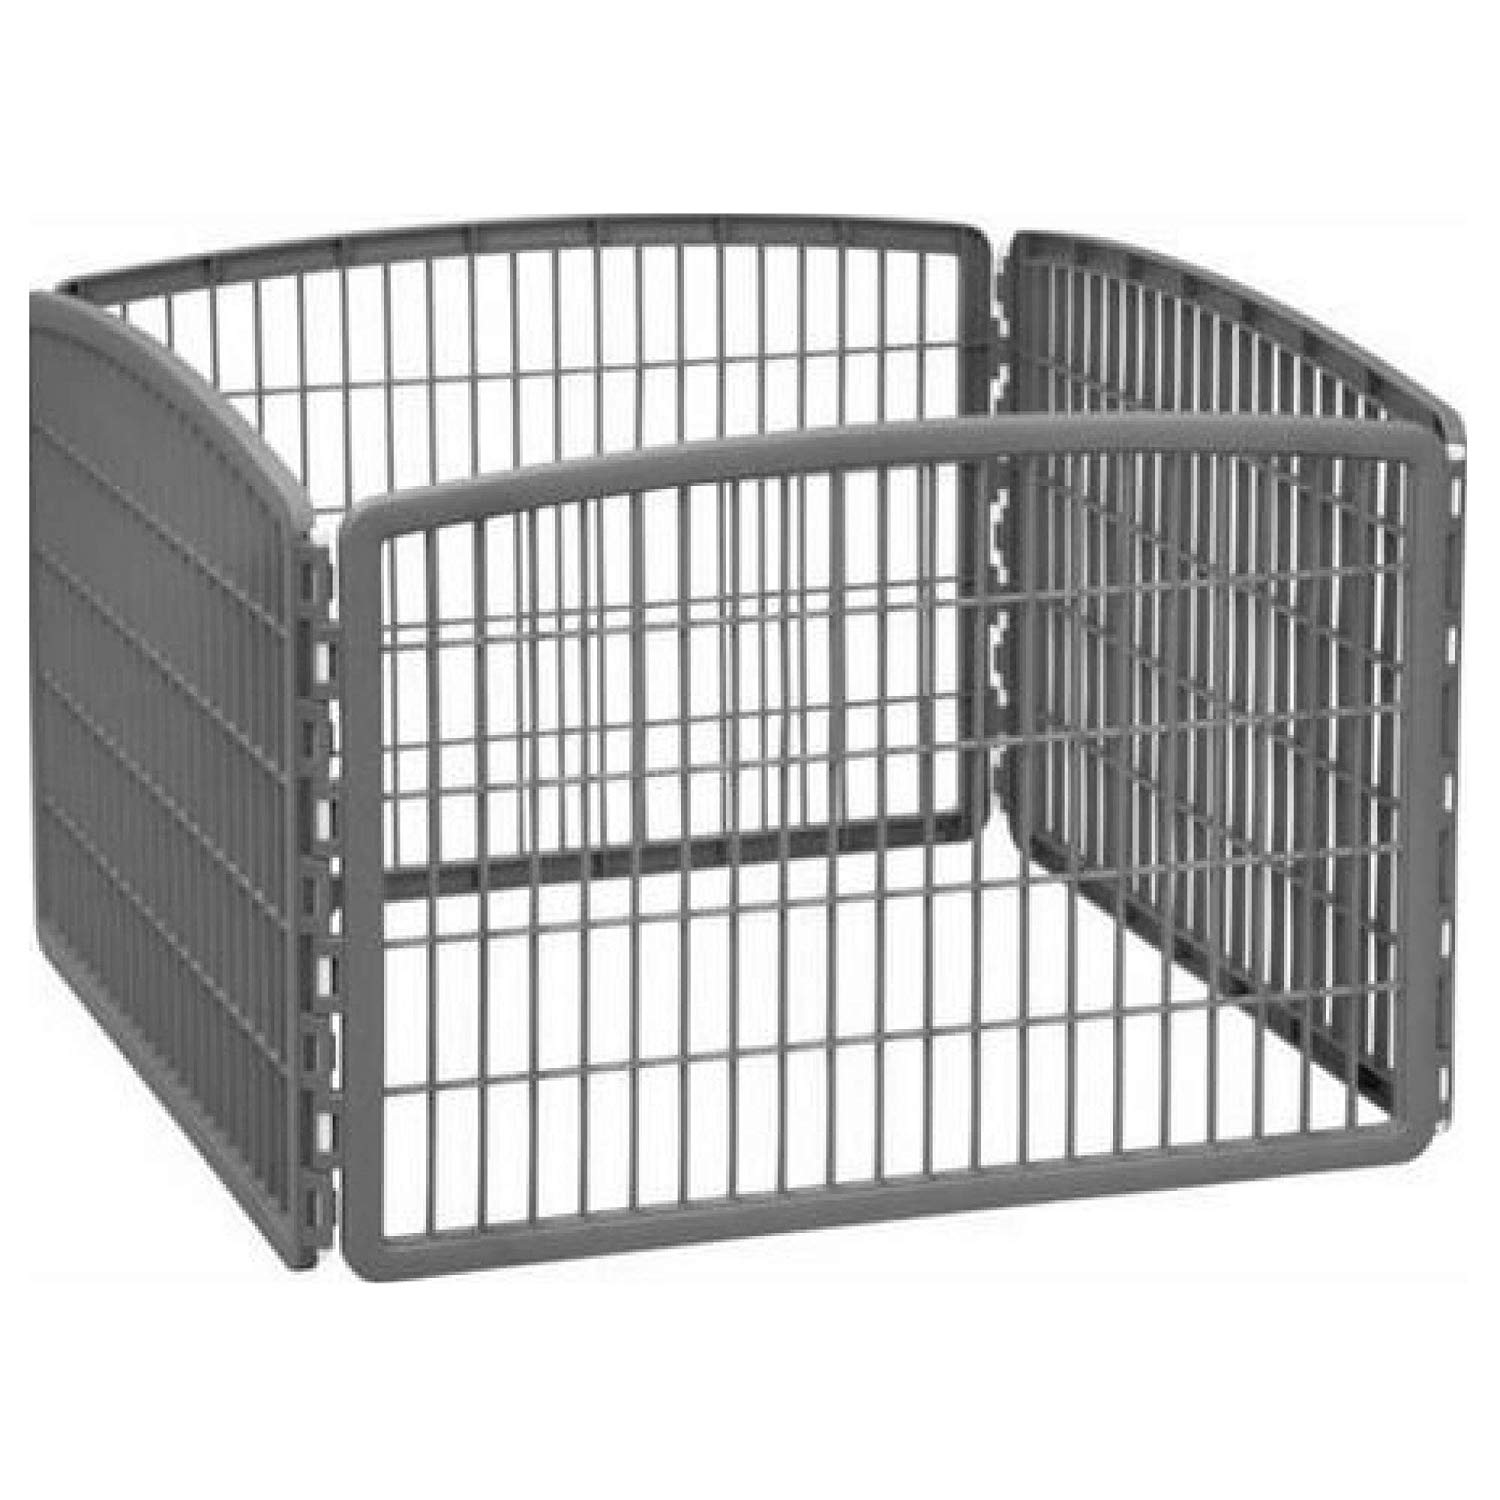 IRIS 24'' Exercise 4-Panel Pet Playpen Without Door - Dark Gray